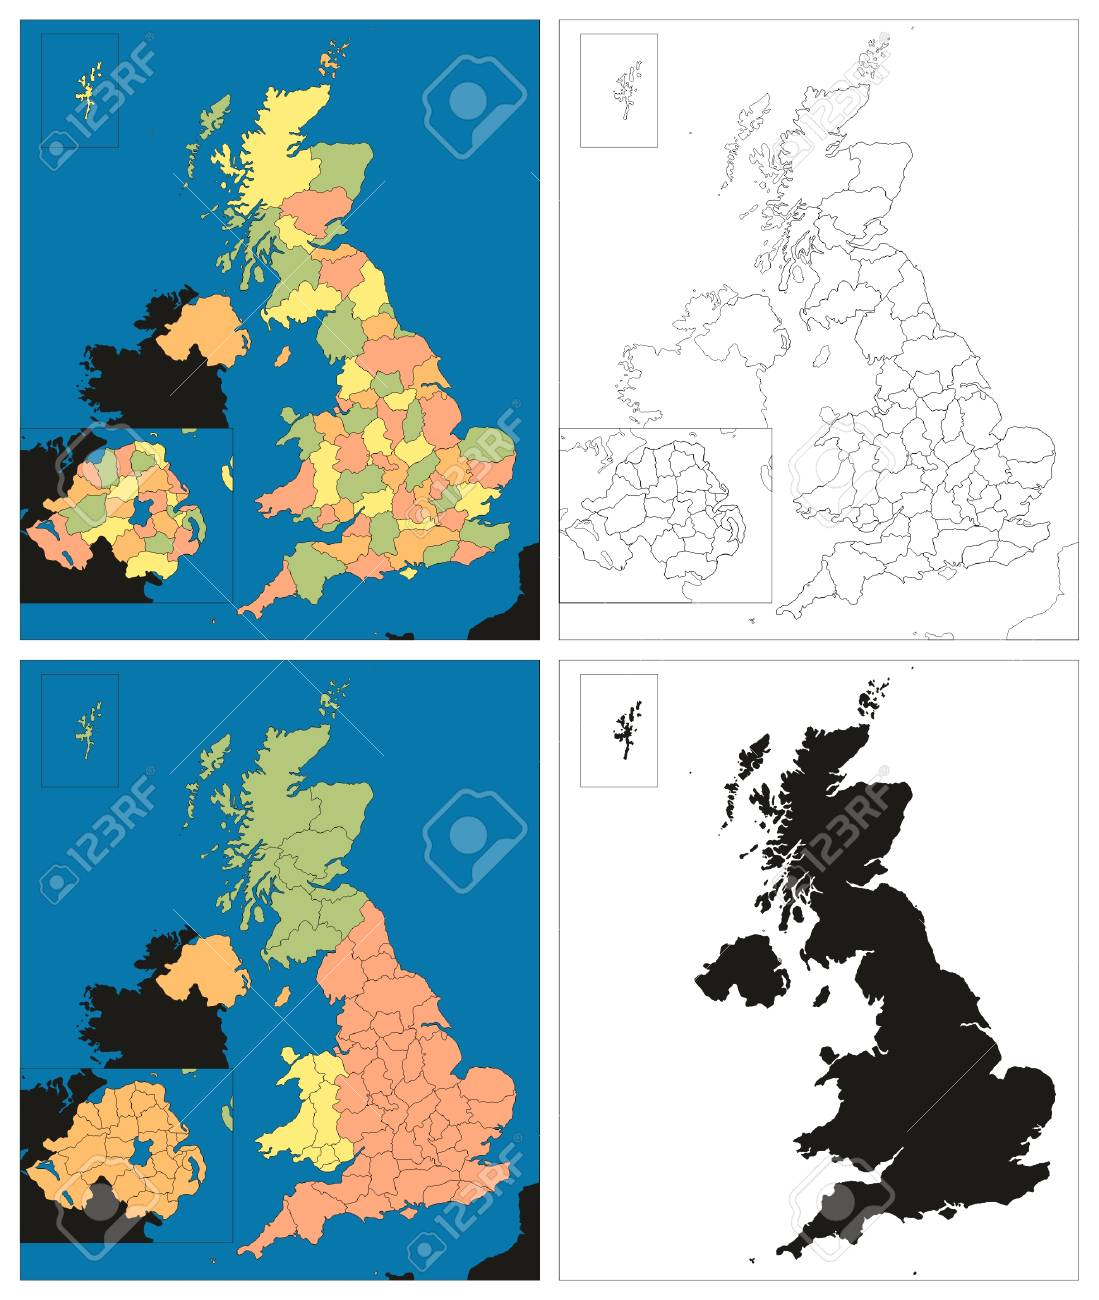 Map Of England Provinces.Vector Kingdom Of Great Britain Island Uk Maps Collection Political